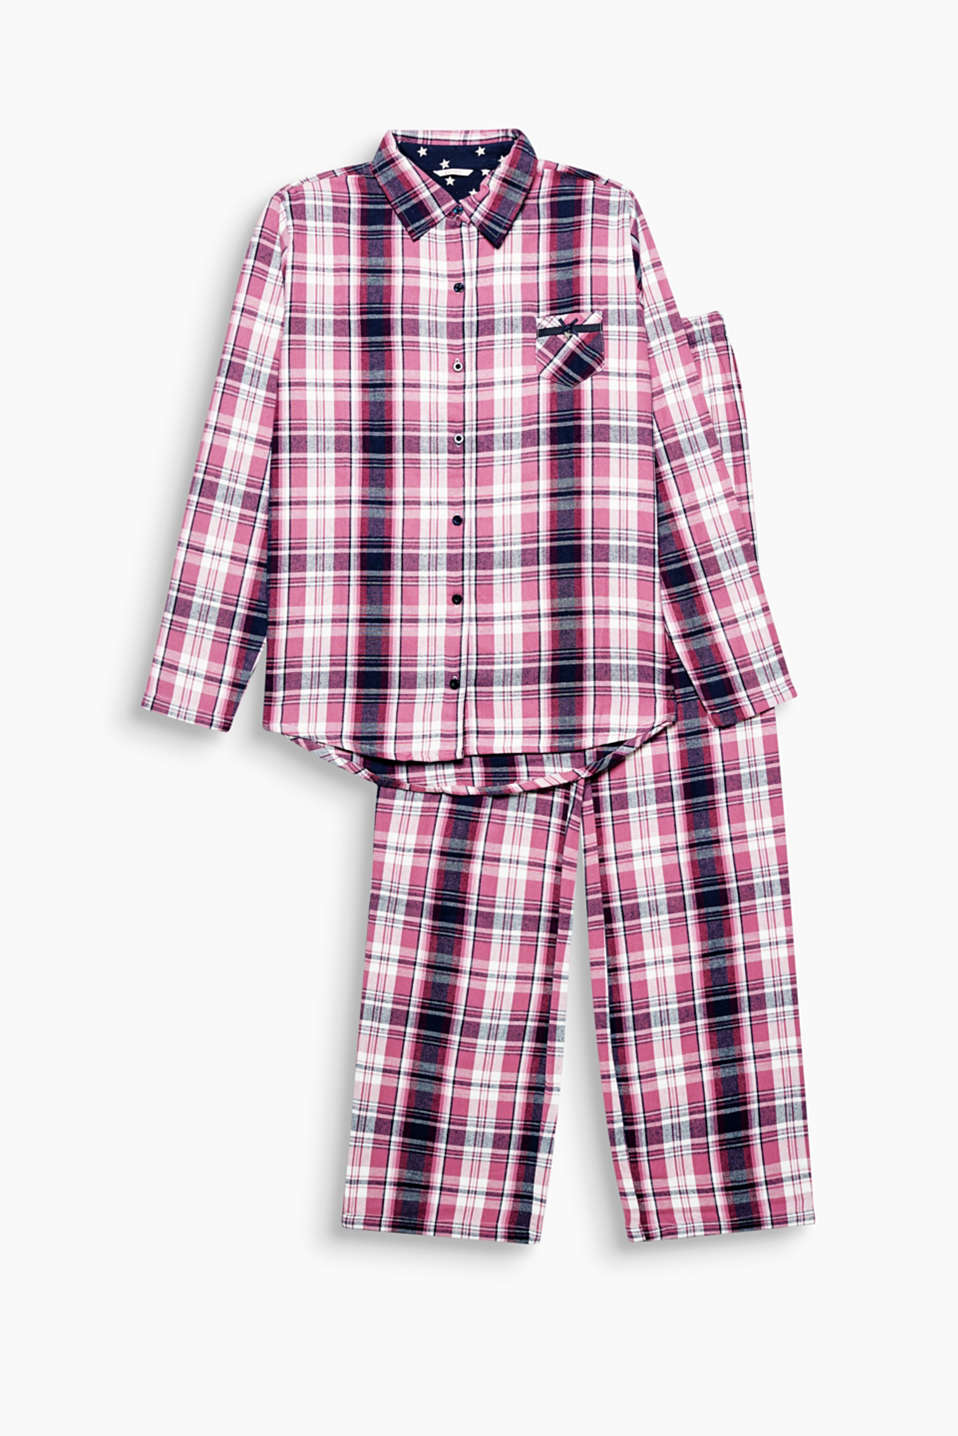 Checks and comfort: these soft flannel pyjamas made of pure cotton in a casual boyfriend style offer you both!